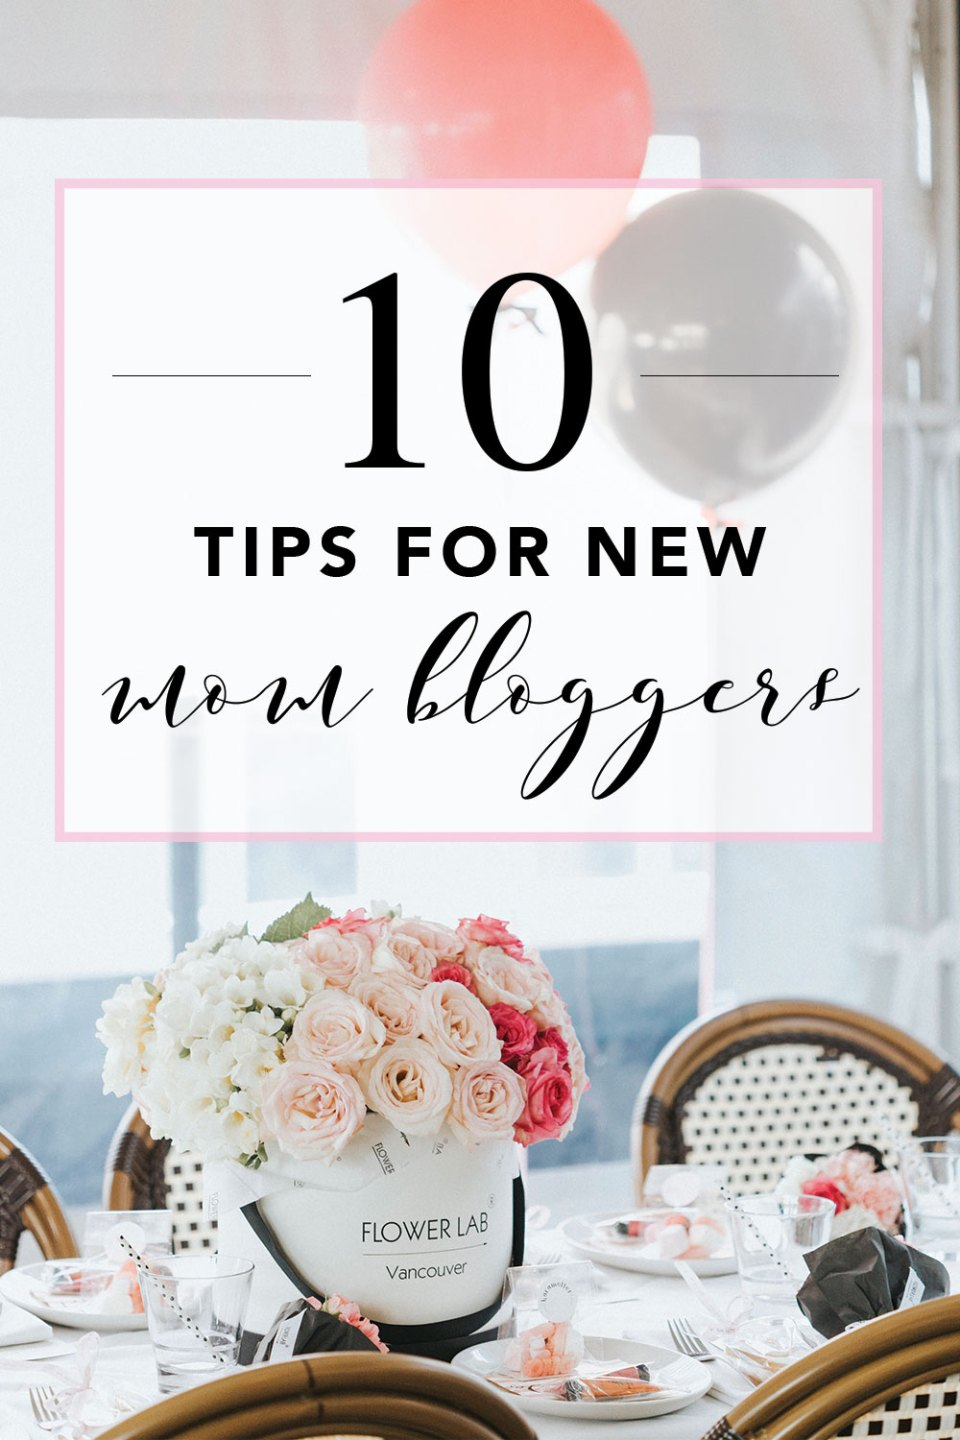 10 Tips For New Mom Bloggers